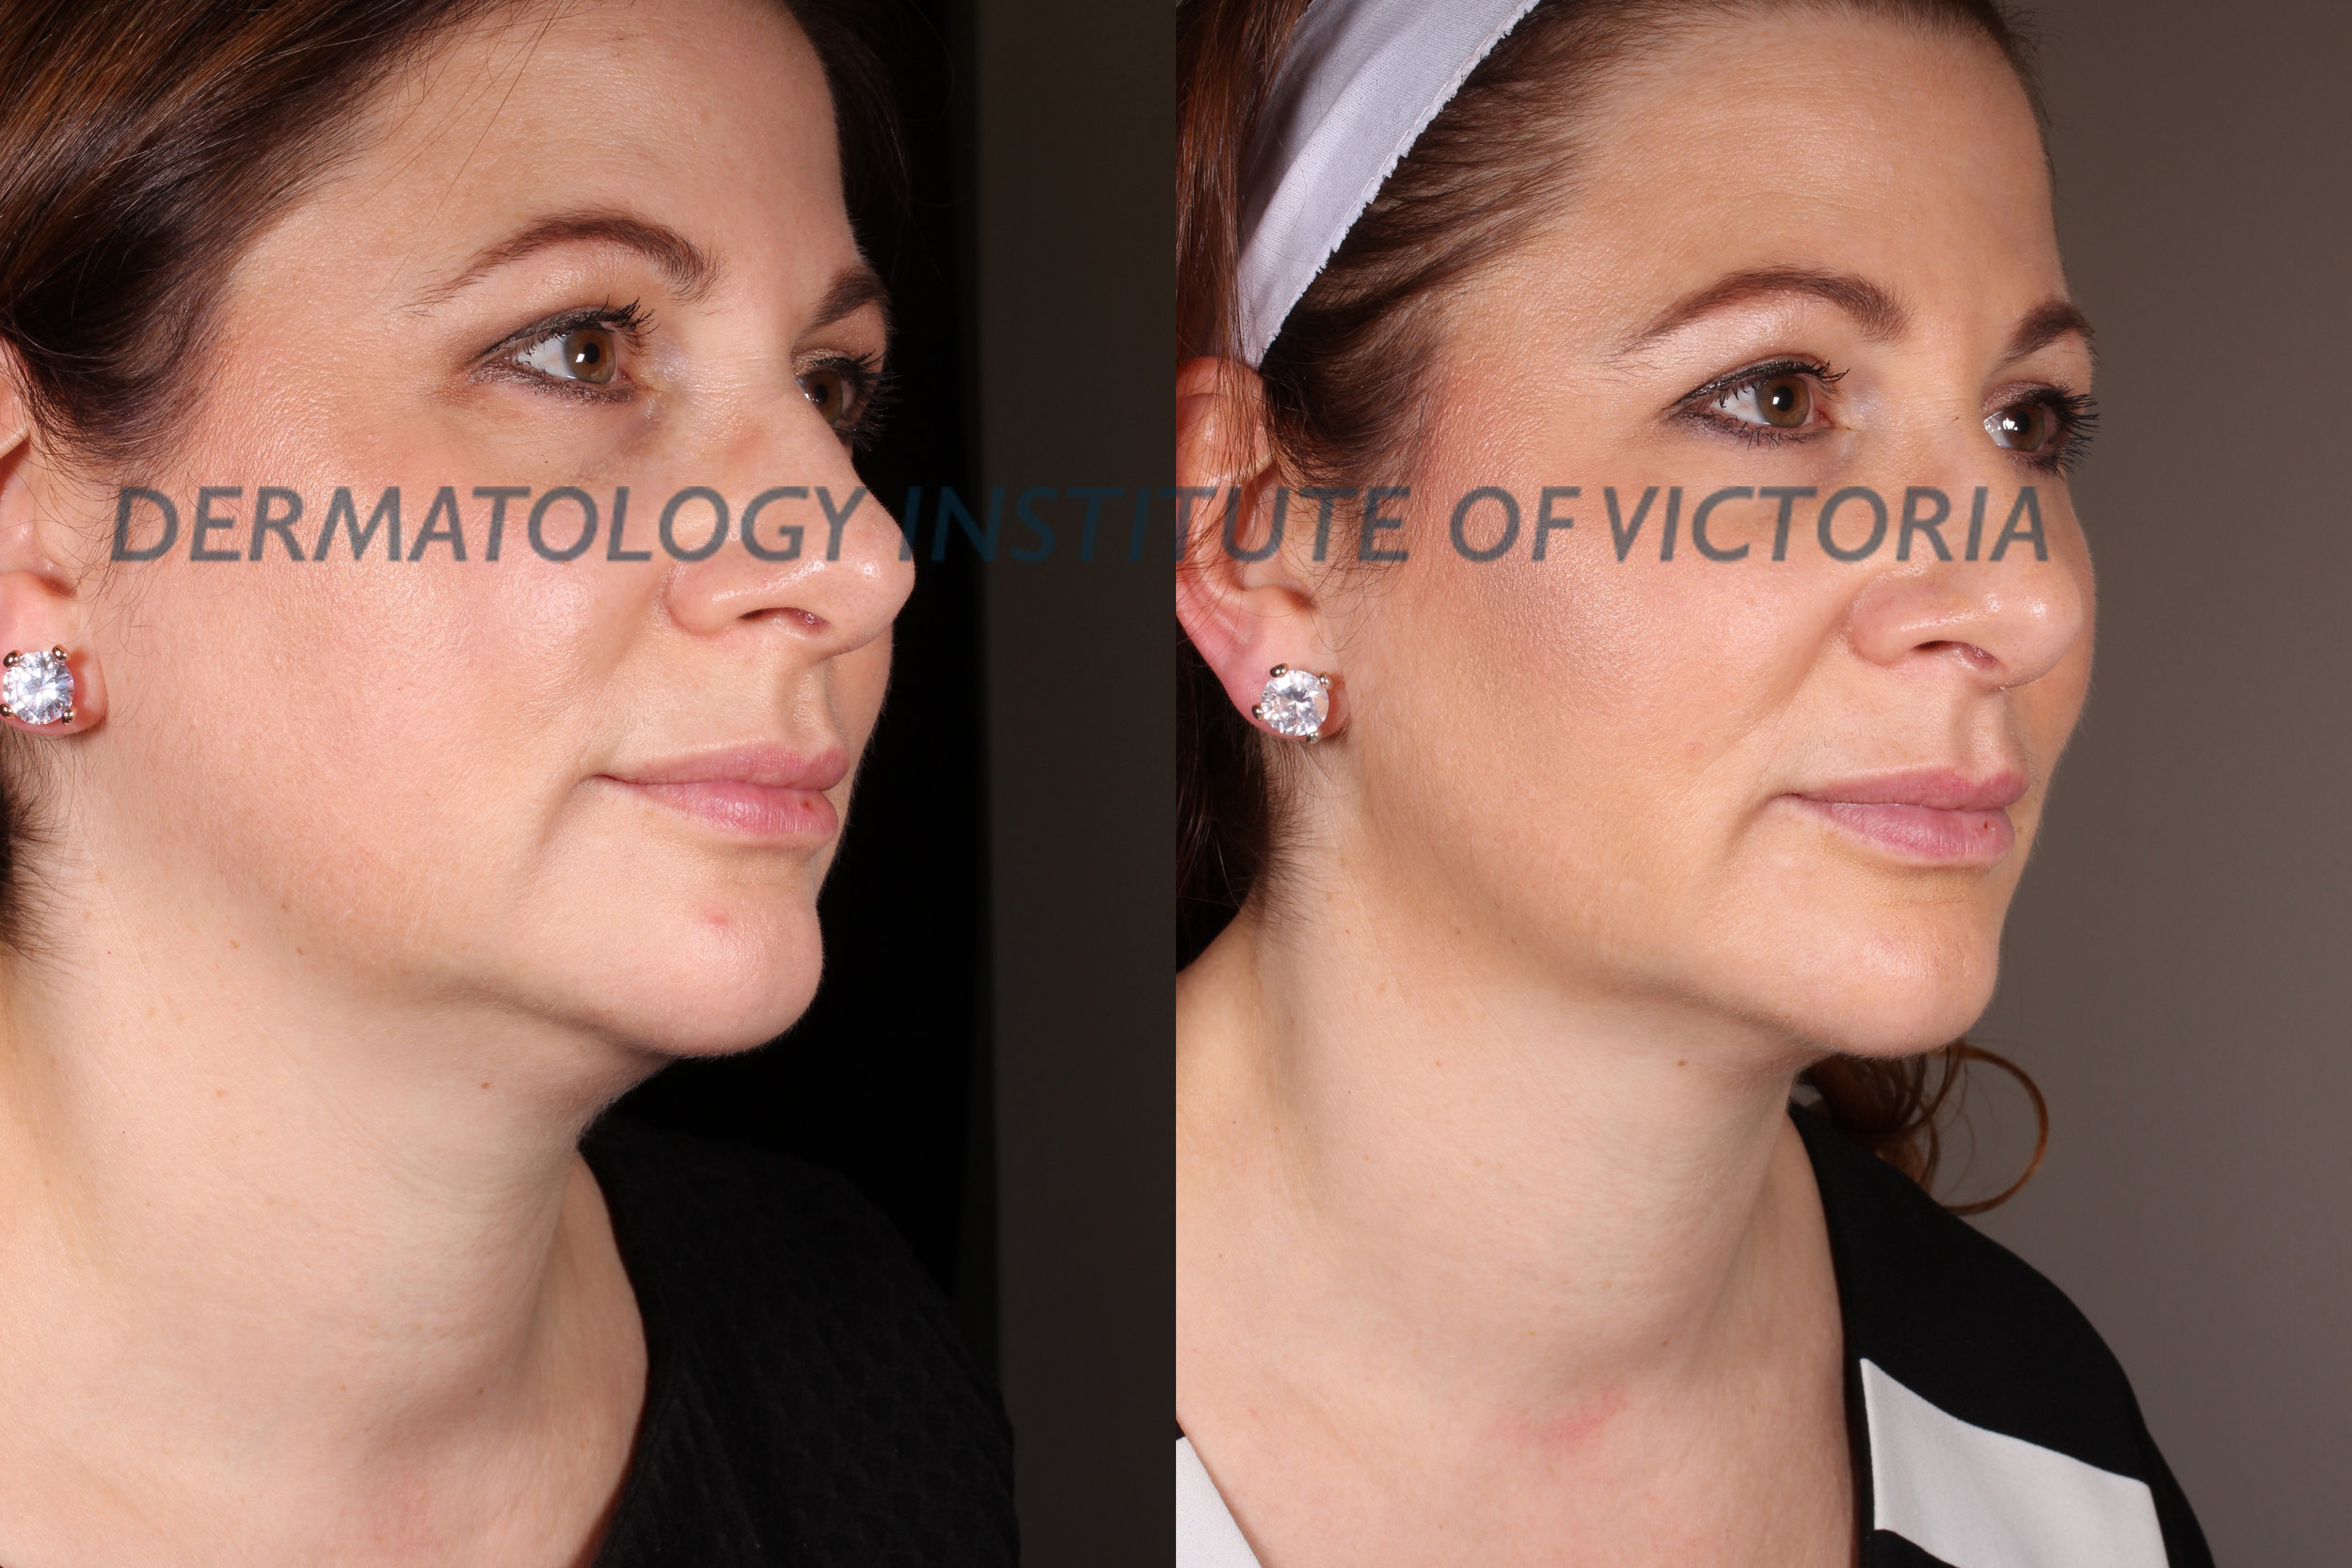 Before (left) & After (right) Ultraformer treatment to the jawline at The Dermatology Institute of Victoria. Results achieved by Nurse Practitioner Katy Wallace RN.